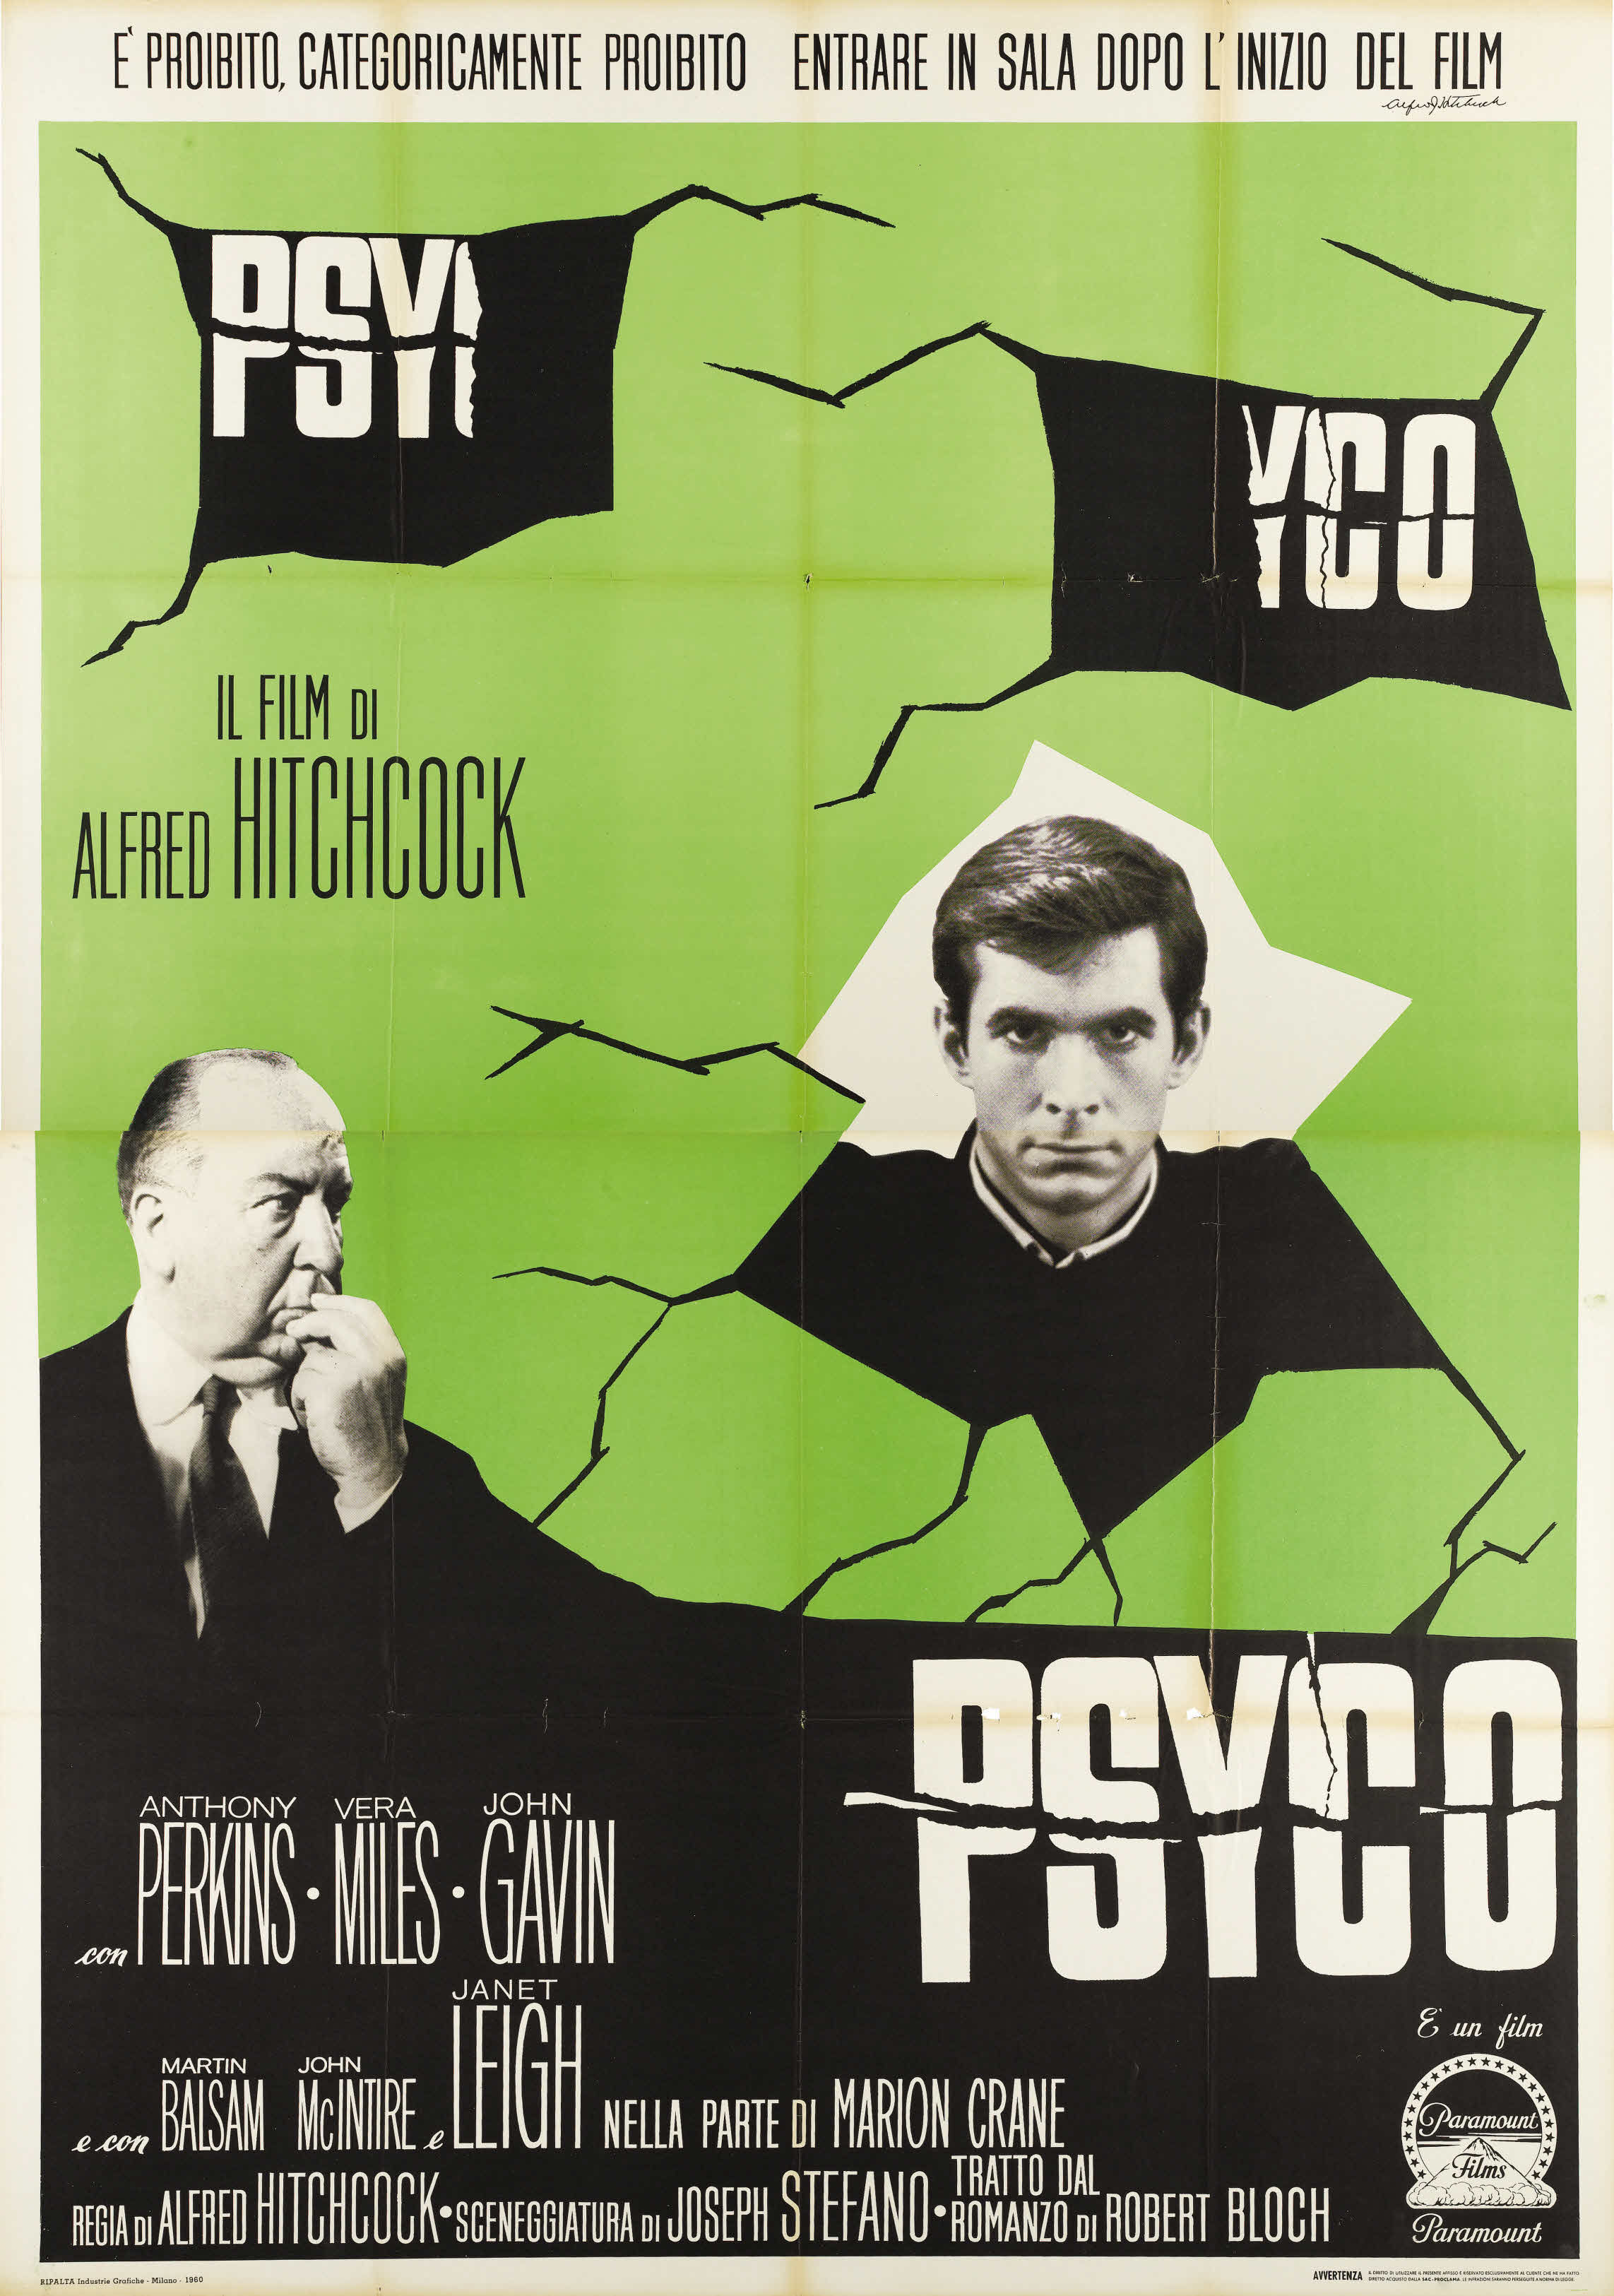 a review of the movie psycho by alfred hitchcock 1-16 of 114 results for movie: psycho by alfred hitchcock click try in your search results to watch thousands of movies and tv shows at no additional cost with an amazon prime membership psycho (1960.